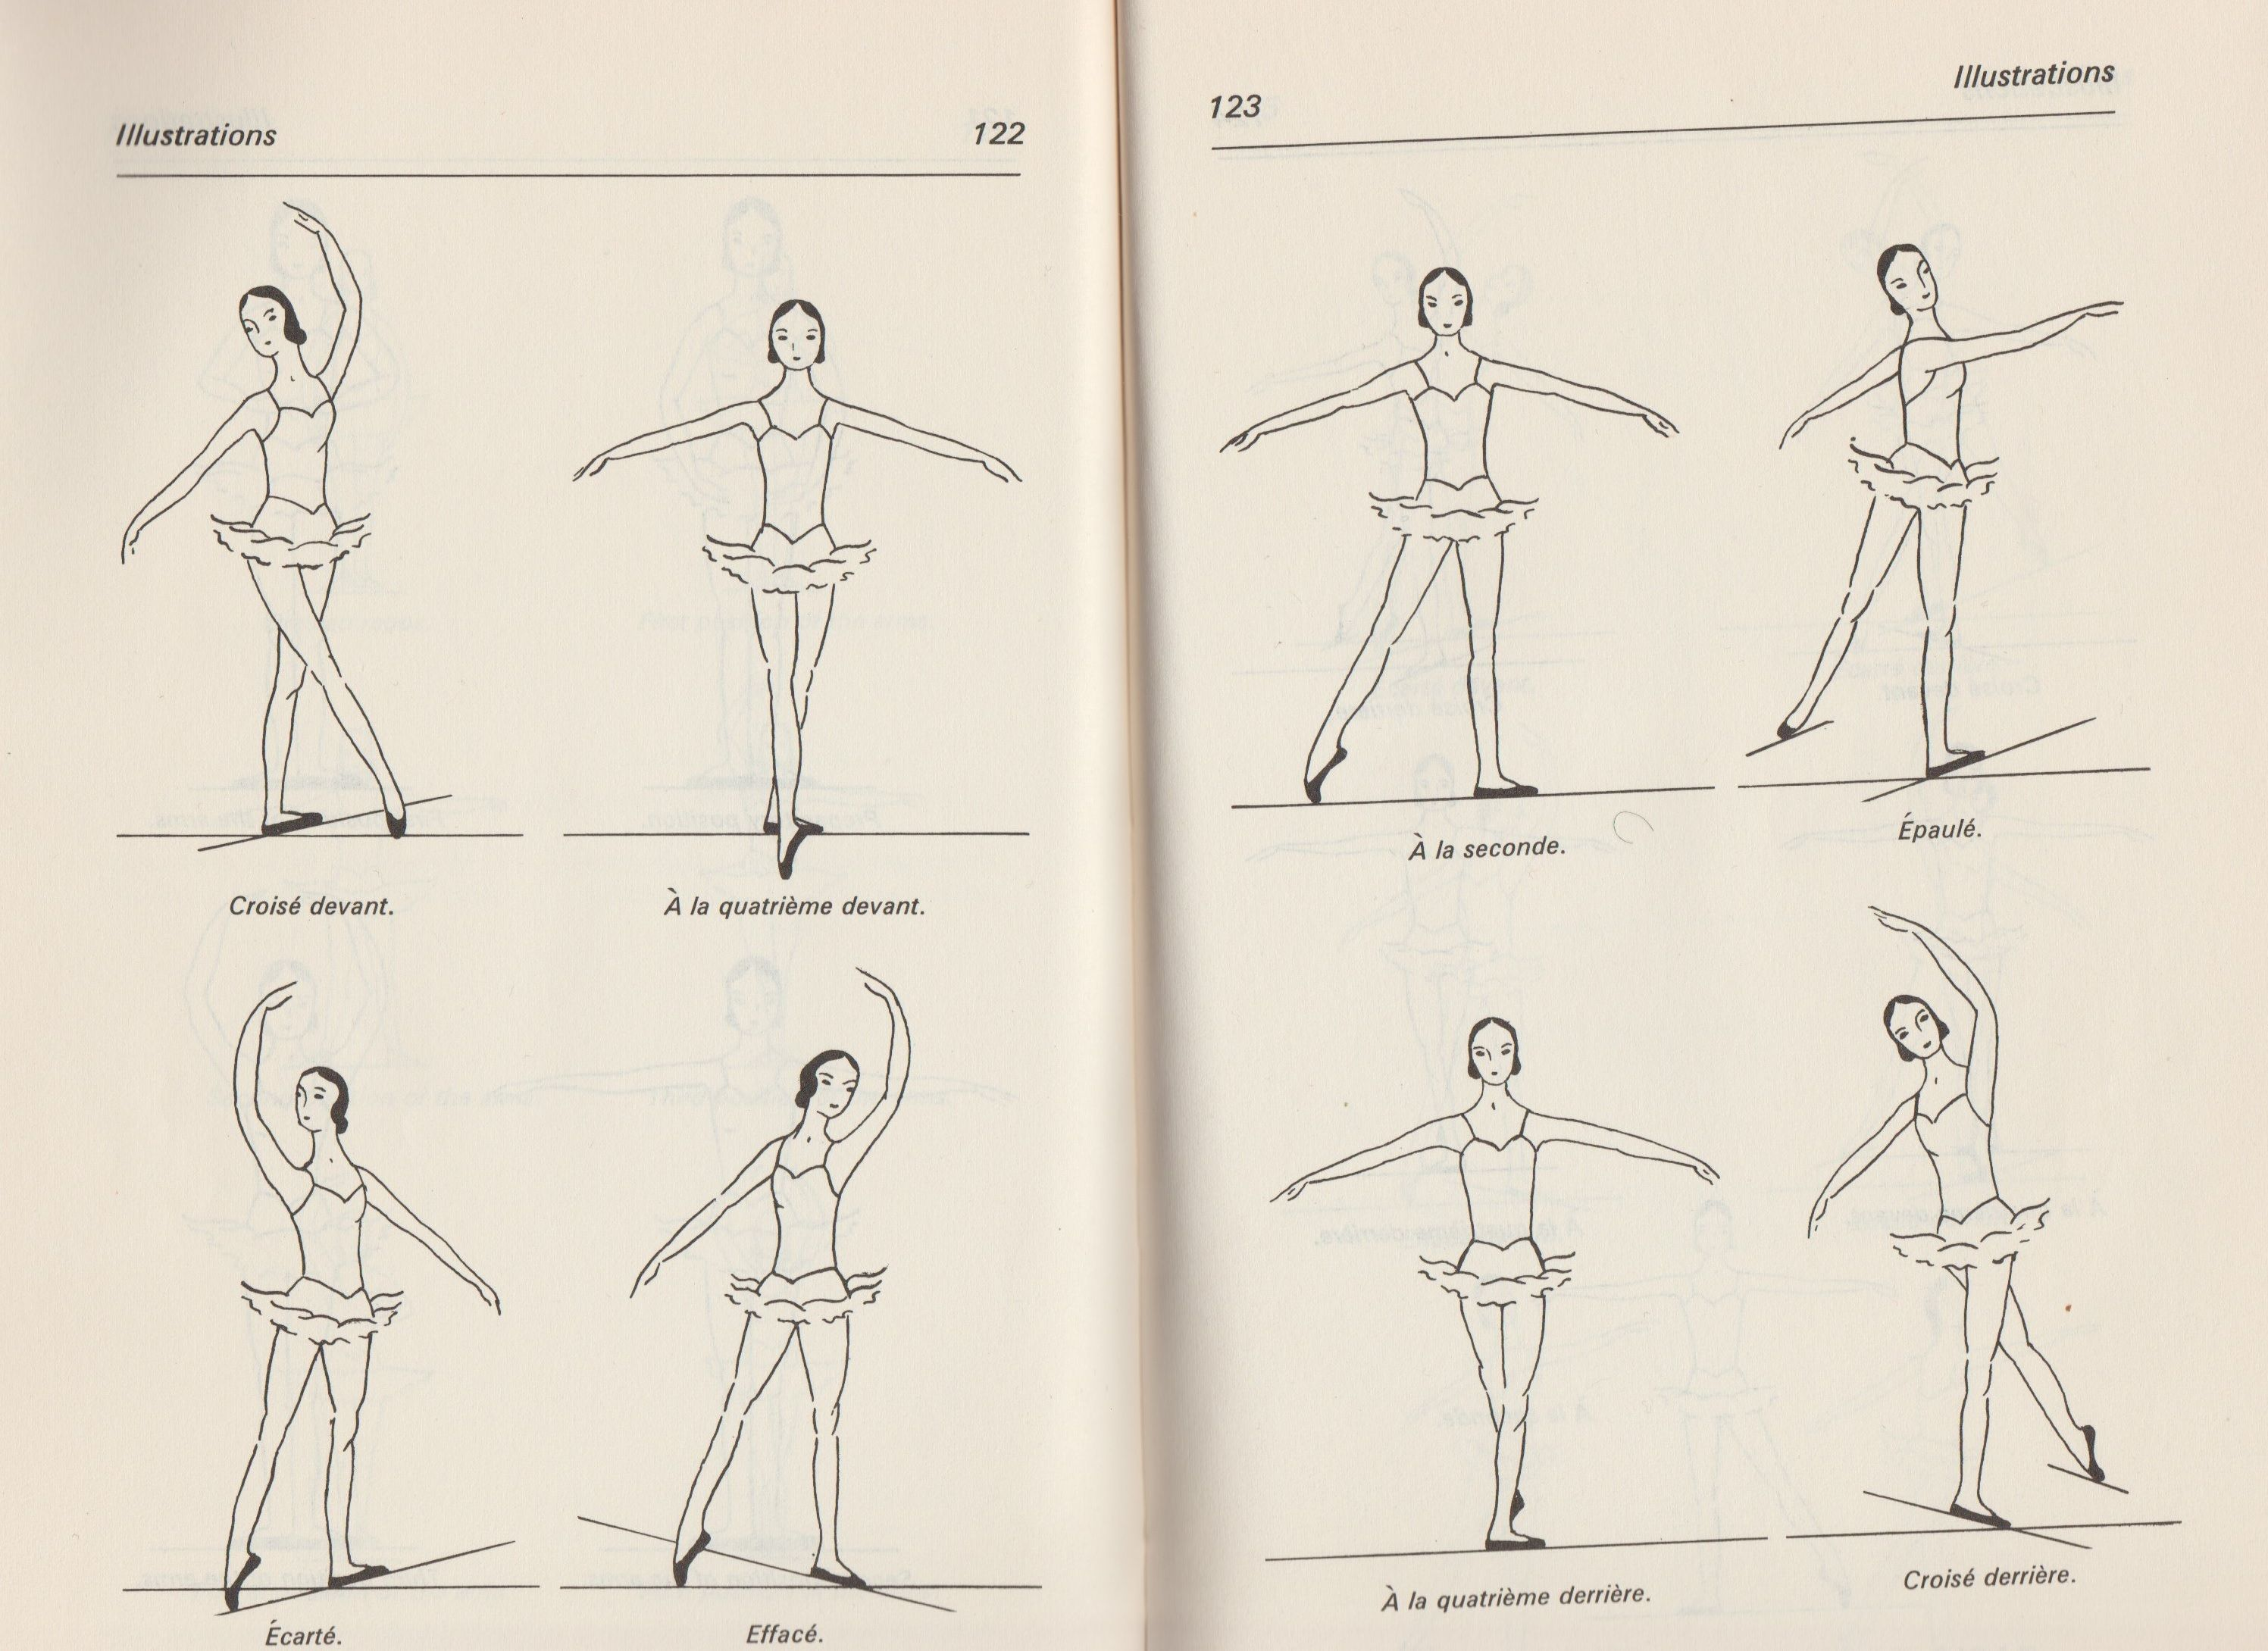 Basic Positions Of The Body Cecchetti Method Pages 122 123 Grant G 1967 Technical Manual And Dictionary Of Classical Ballet Ballet Positions Positivity